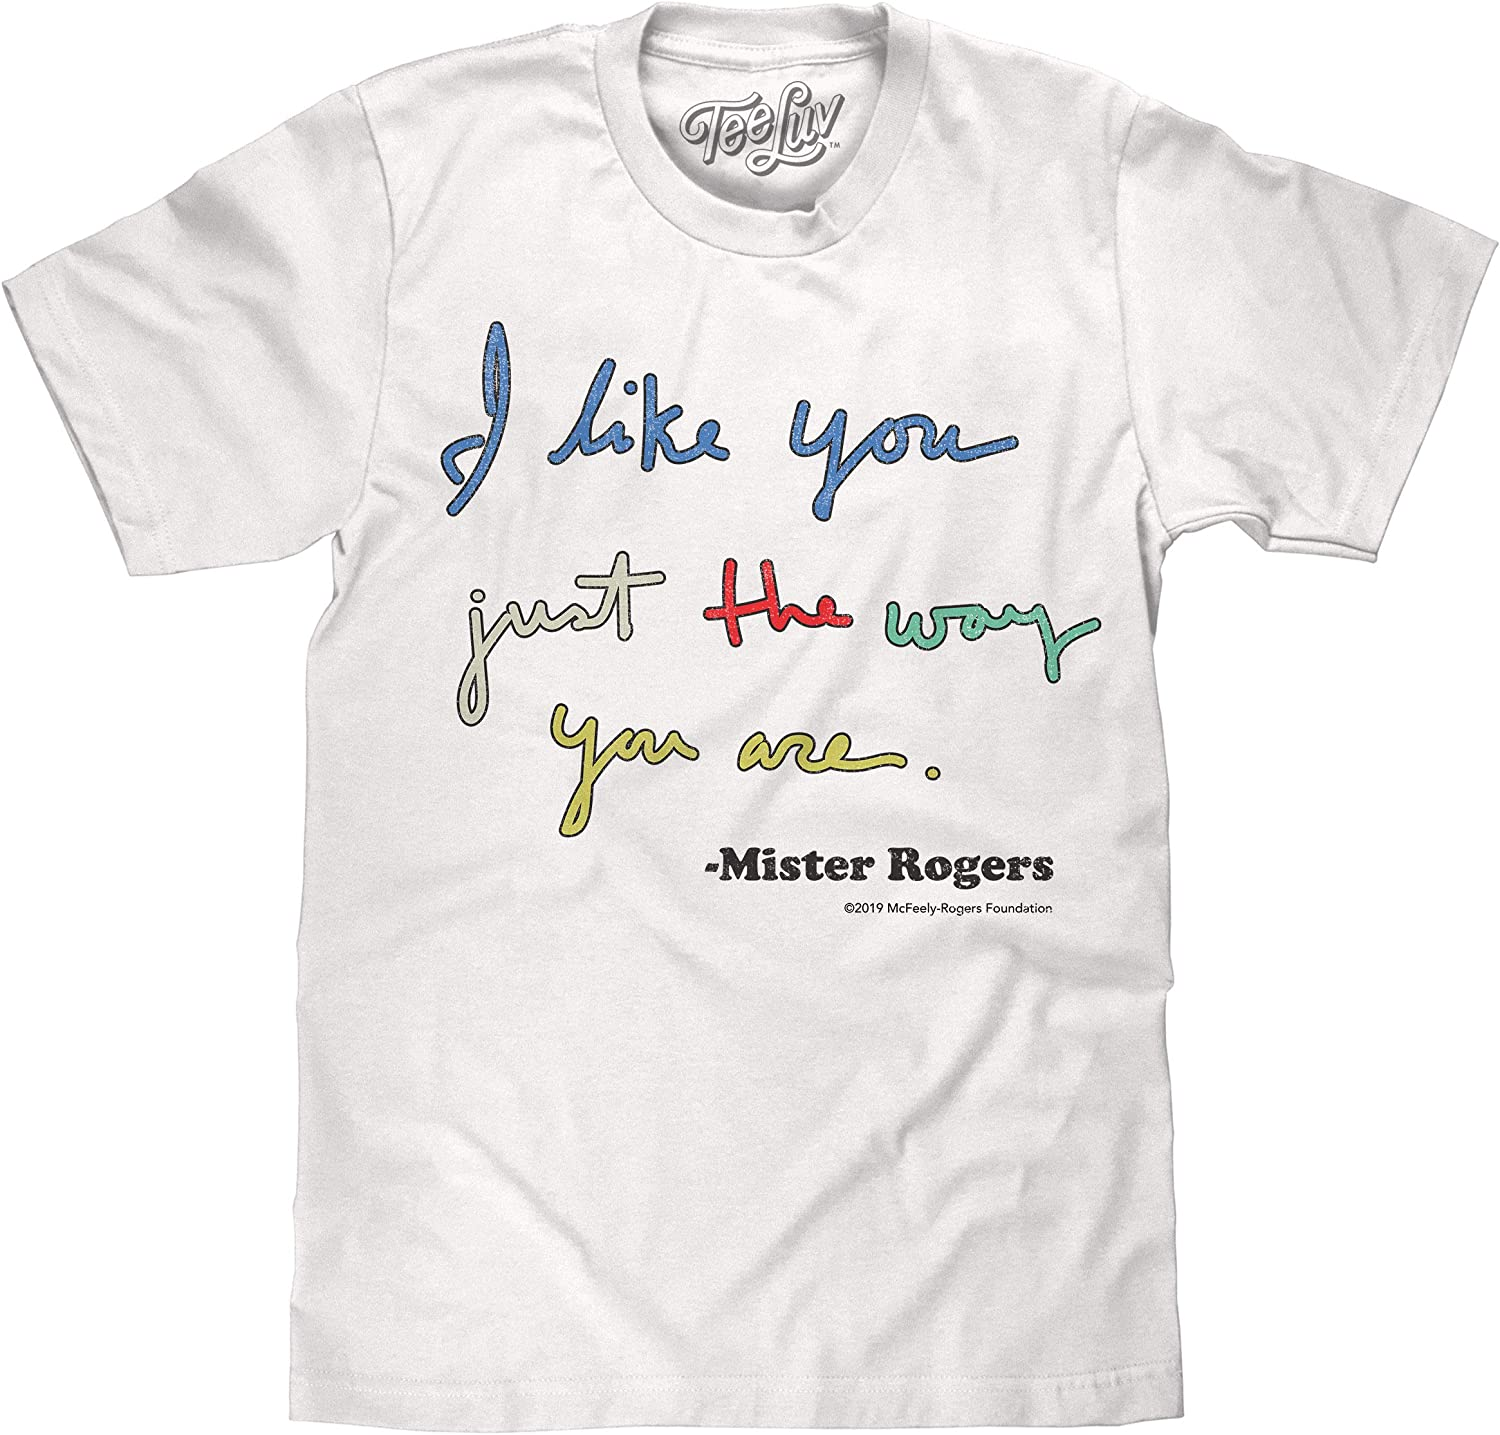 Amazon Com Tee Luv Mister Rogers T Shirt I Like You Just The Way You Are Mr Rogers Shirt Clothing